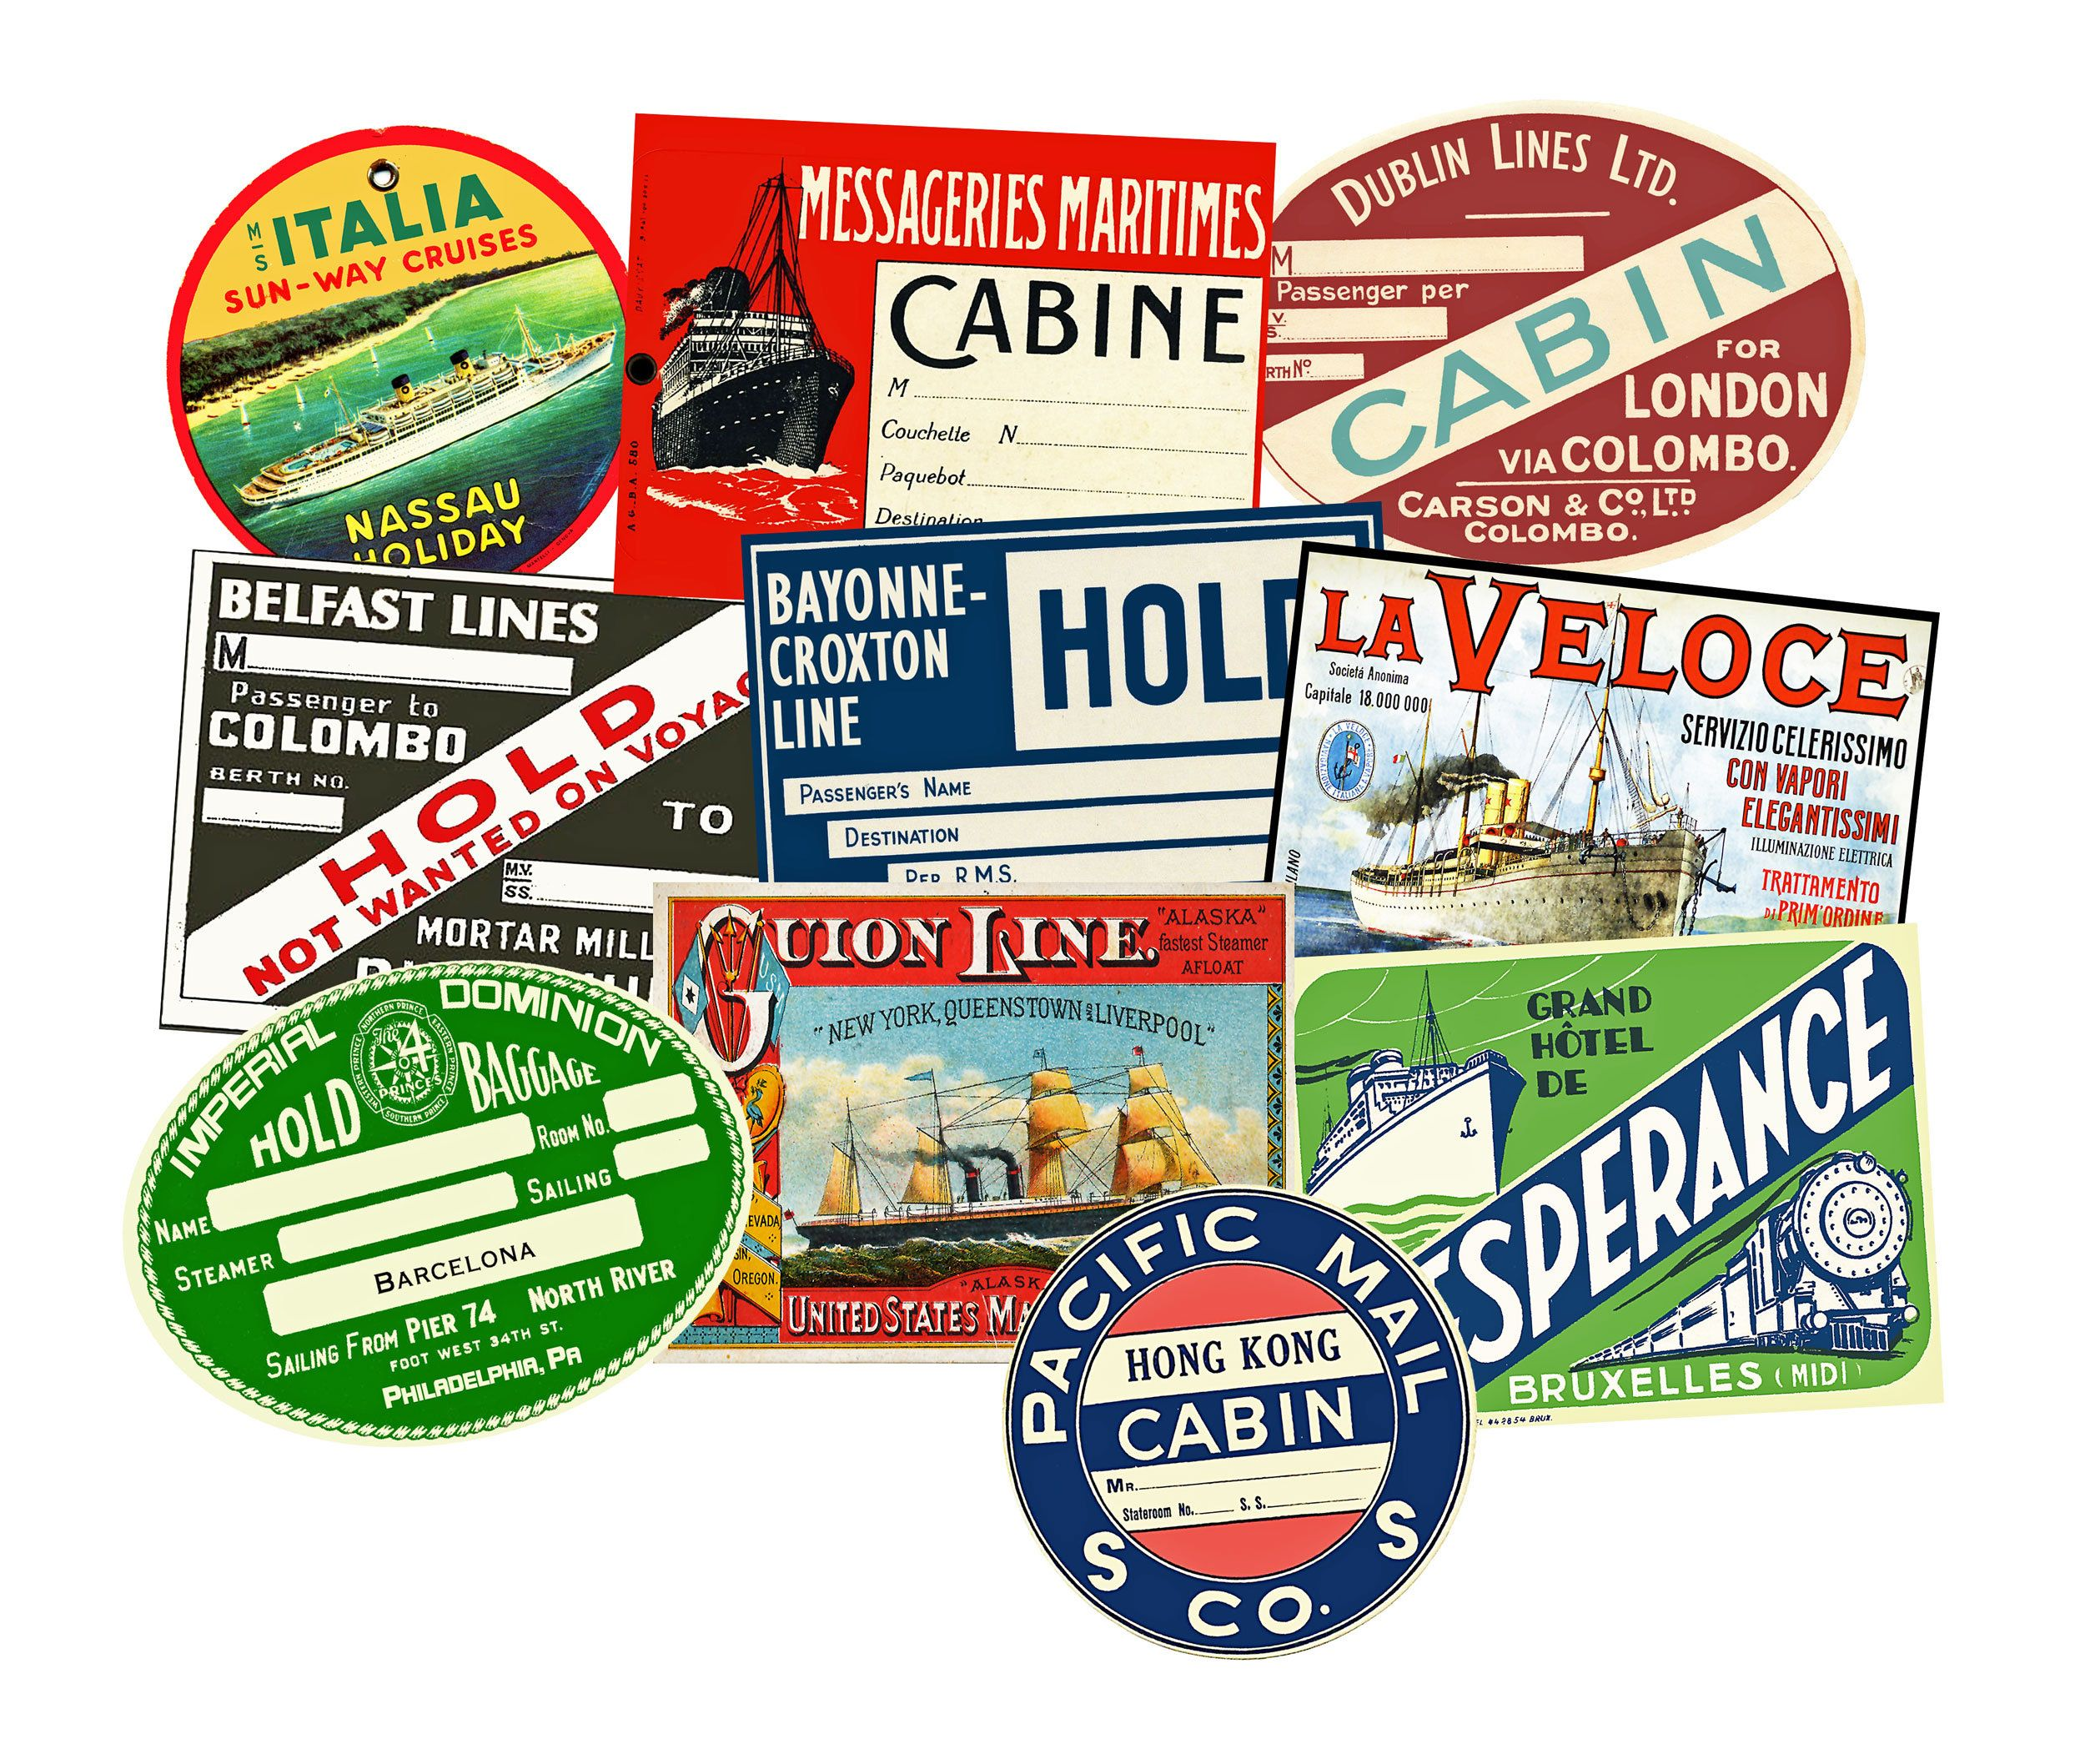 10 Luggage Labels Miniature 2 5 Wide Stickers Colorful Steamship Baggage Tags Steam Trunk Label Suitcase Luggage Labels Sticker Photo Paper Sticker Labels [ 2115 x 2500 Pixel ]